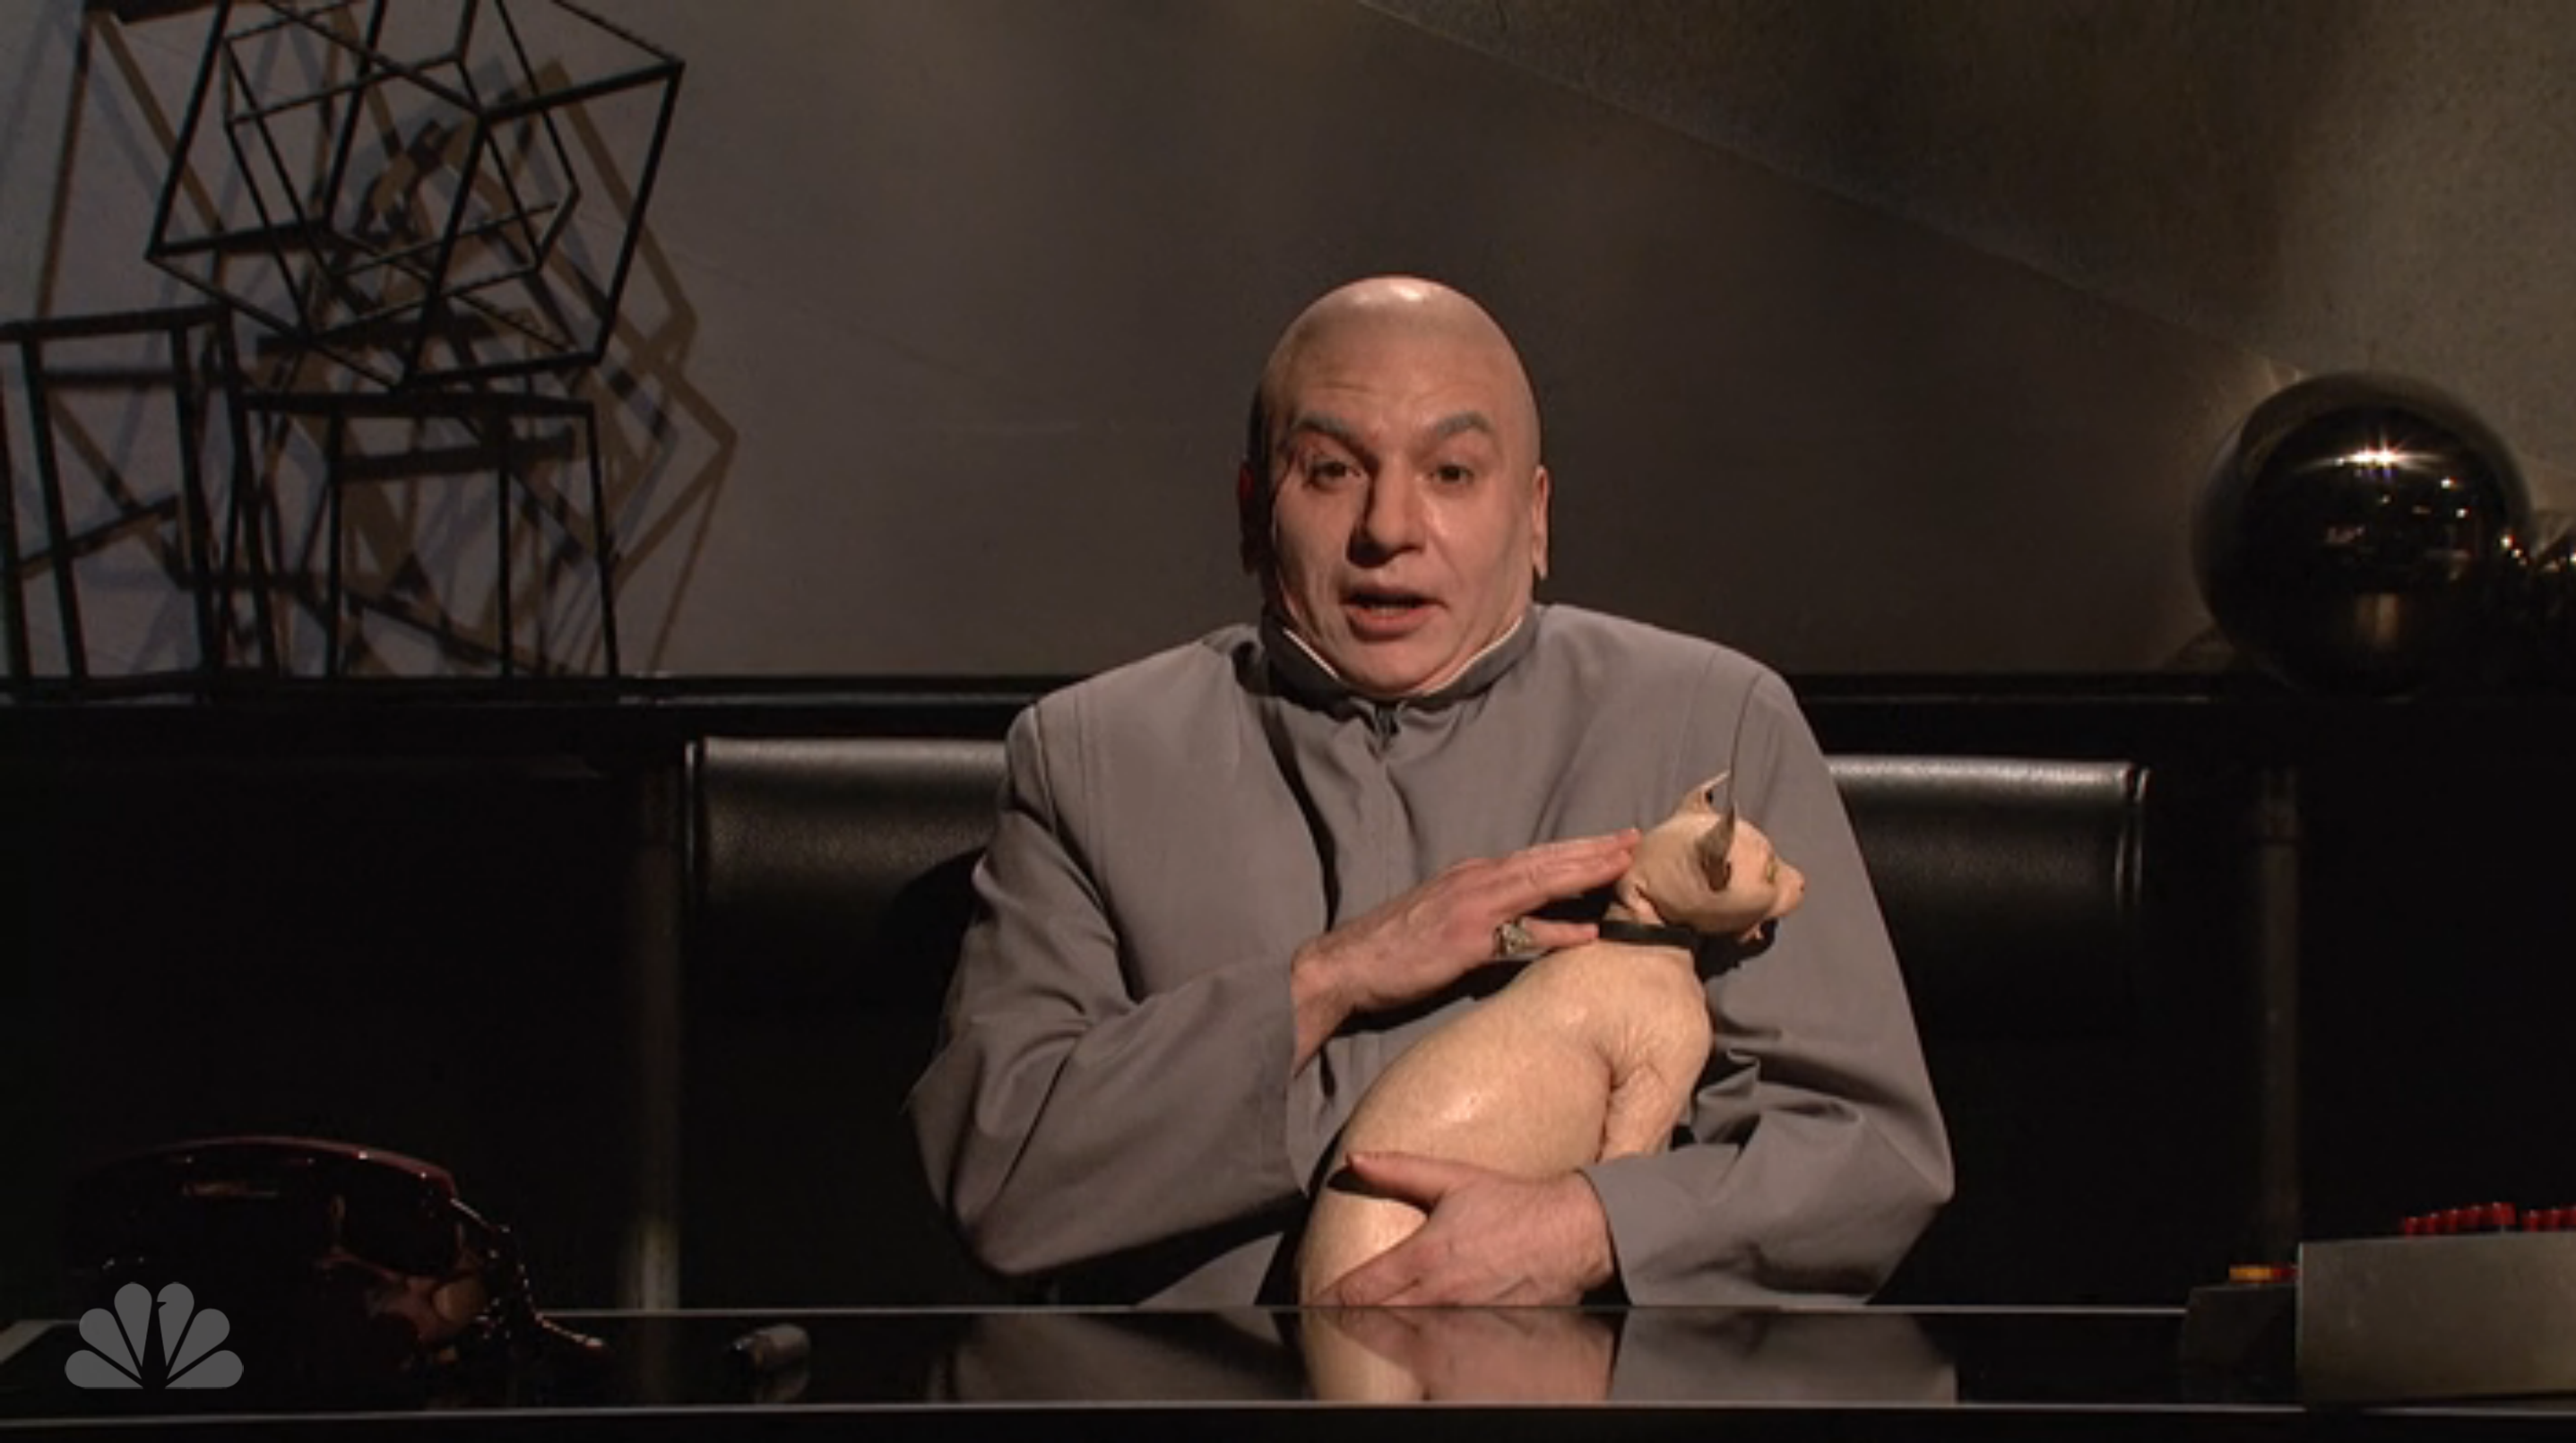 Mike Myers Returns to SNL as Dr. Evil To Make Fun of North Korea